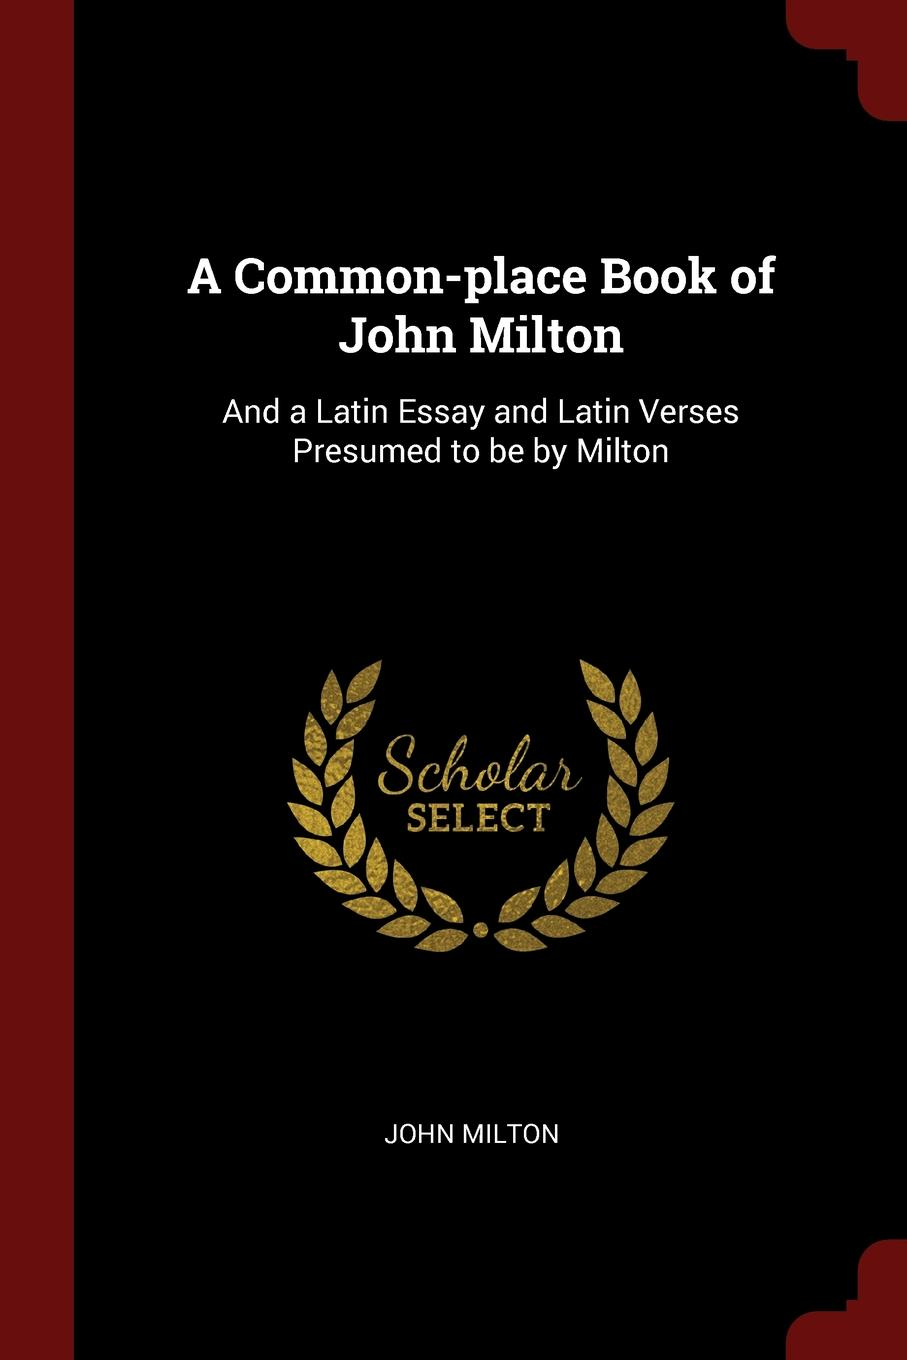 John Milton A Common-place Book of John Milton. And a Latin Essay and Latin Verses Presumed to be by Milton